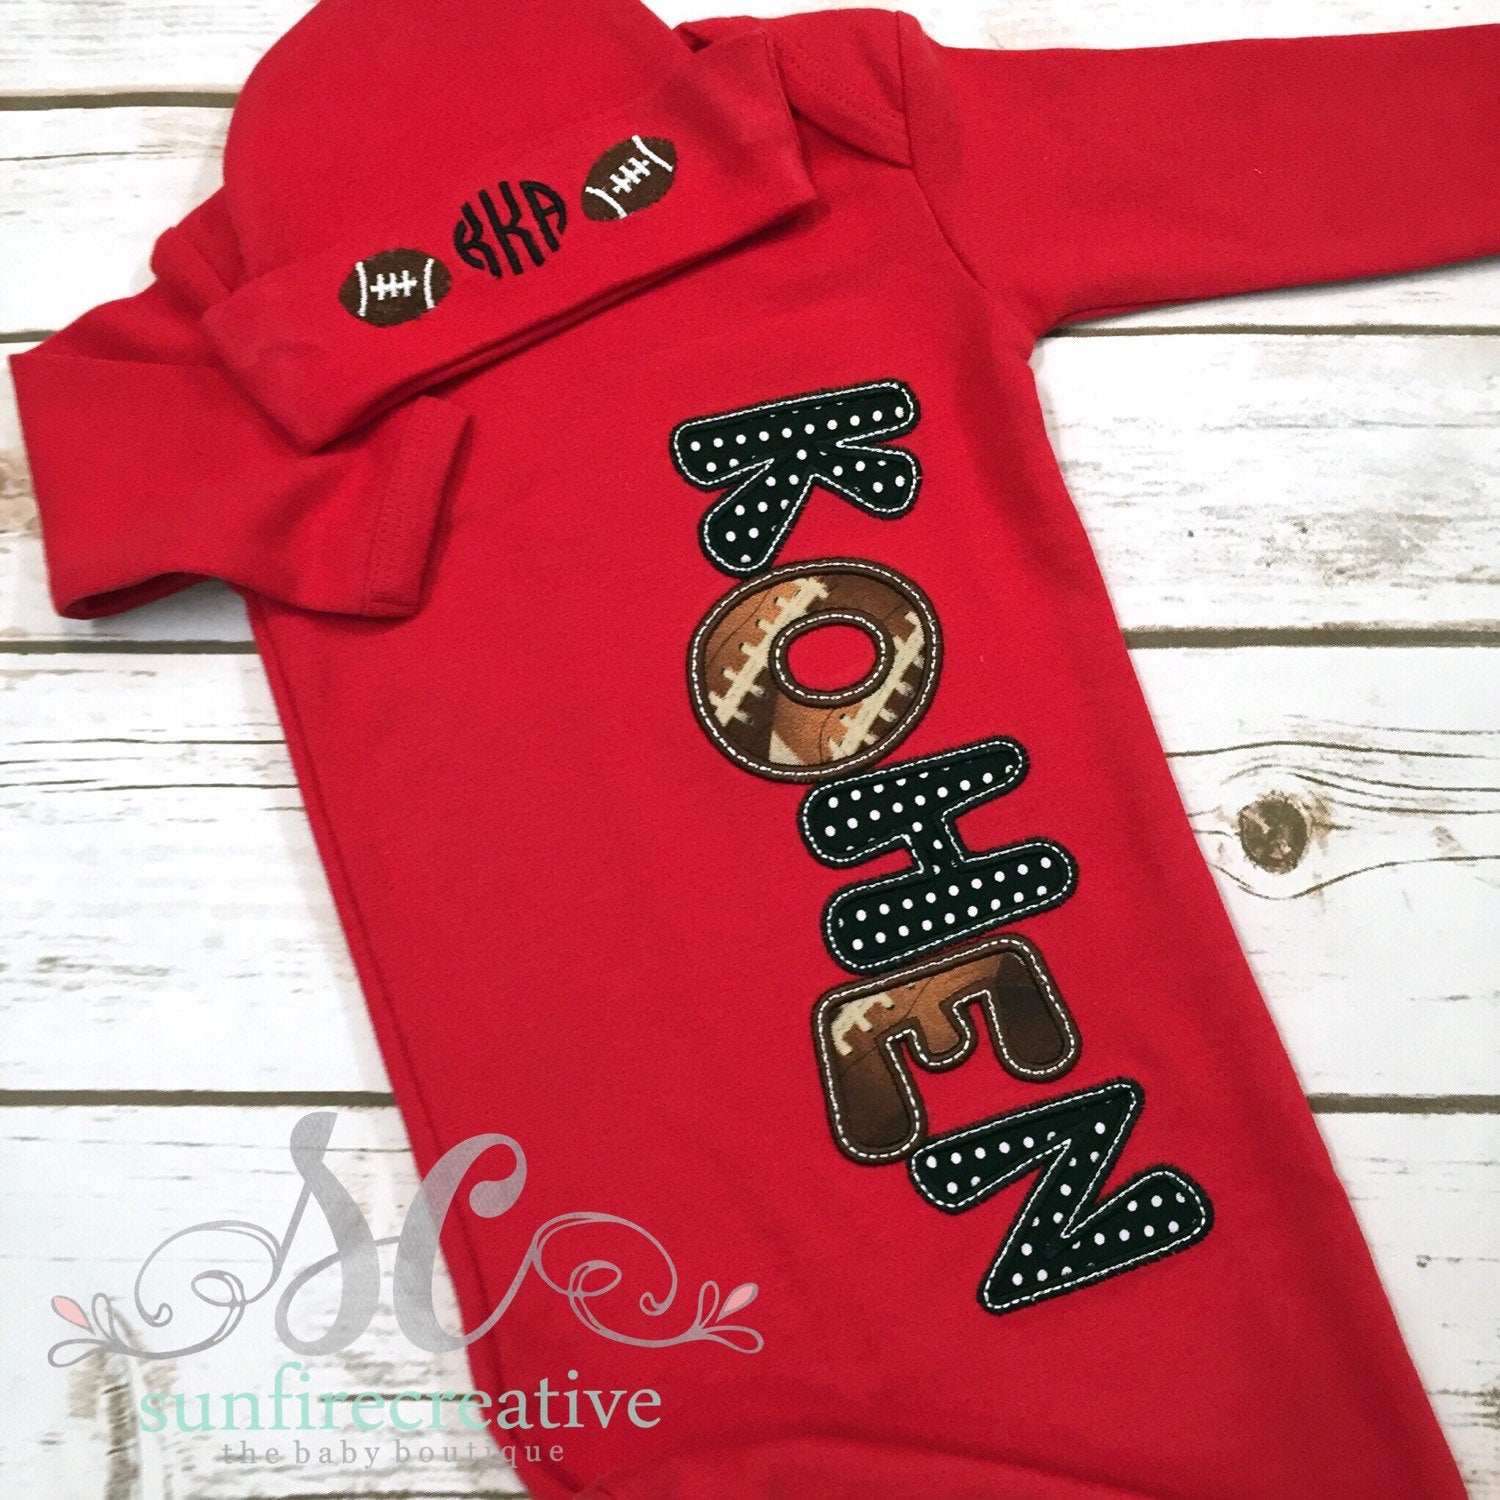 7c4bb0bf5 Baby Boy Sleeper - Baby Boy Coming Home Outfit - Sunfire Creative Baby  Boutique